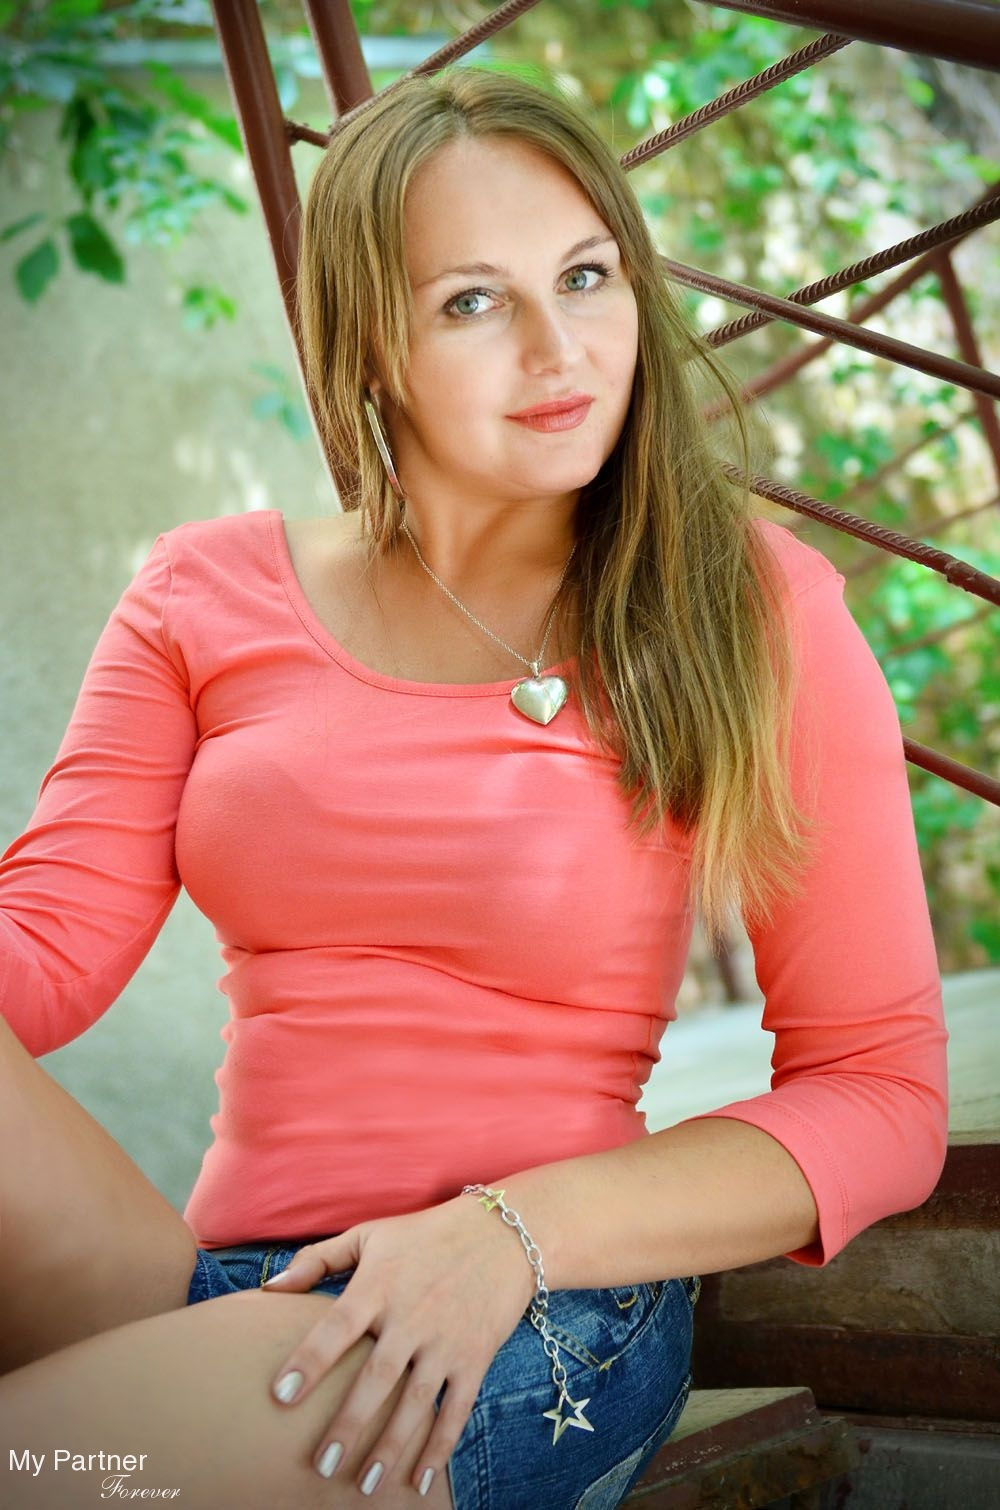 Single Girls Photo Video Profiles from Ukraine Online